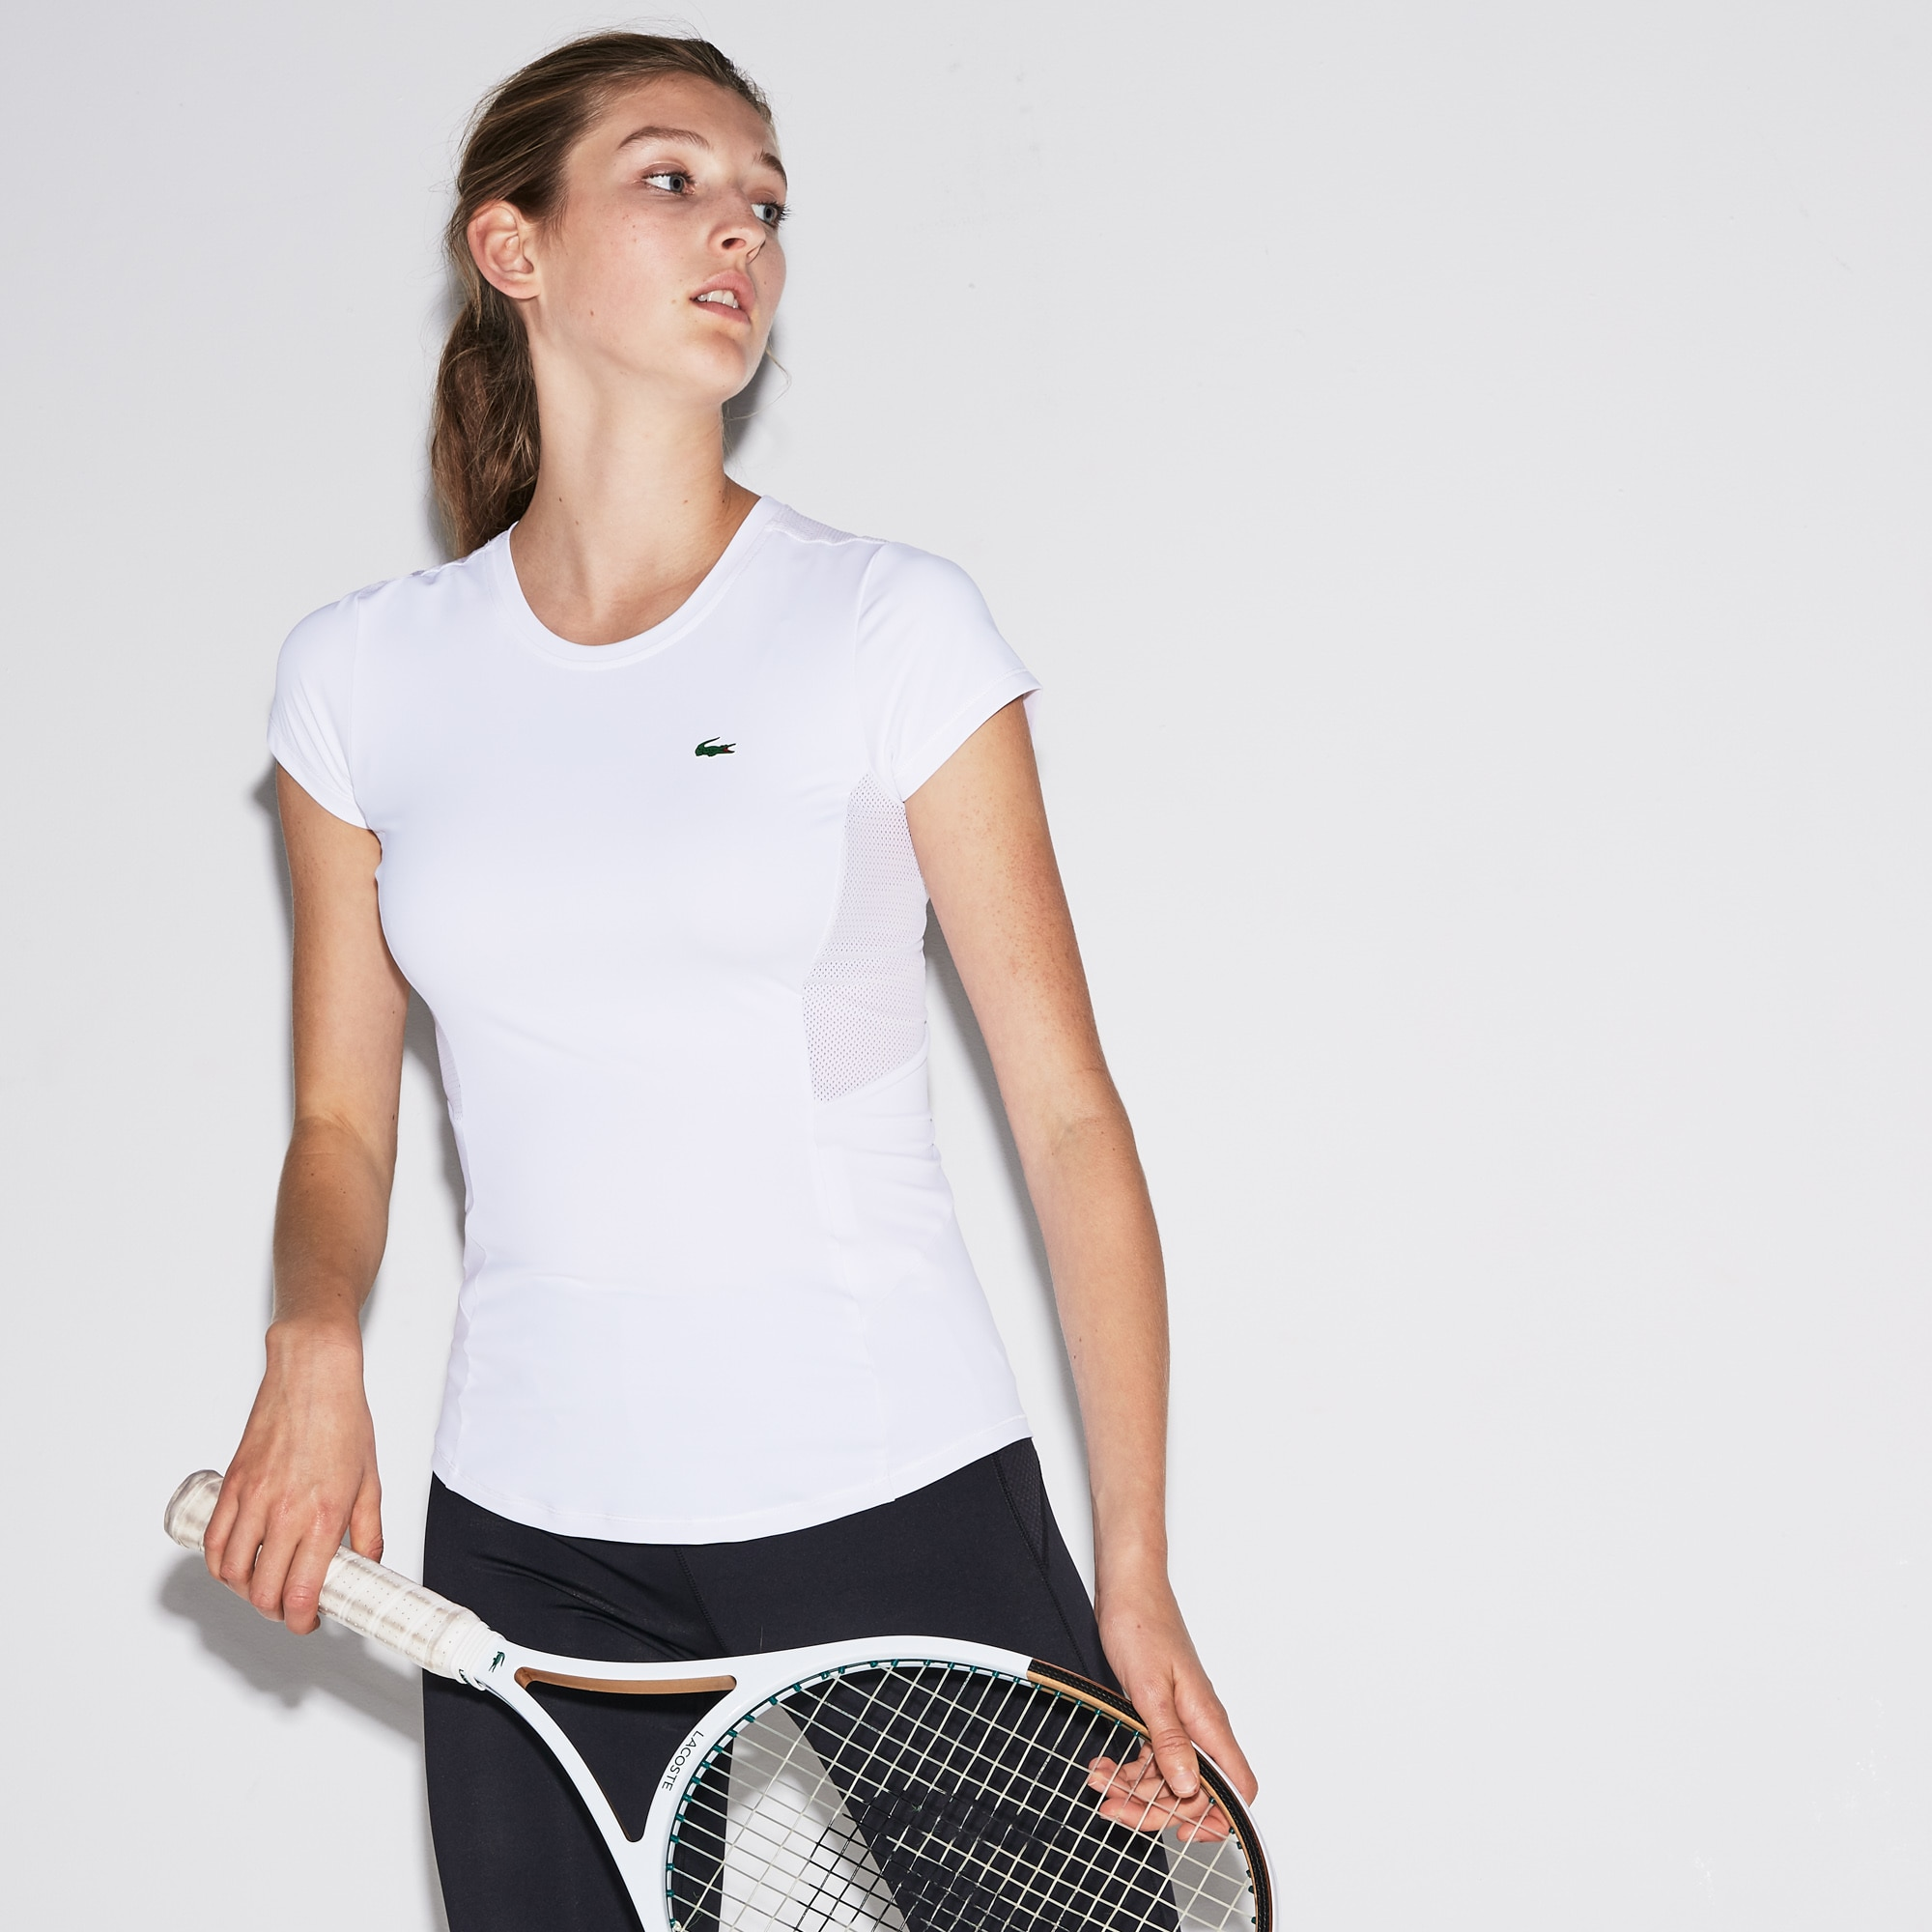 Women's SPORT Crew Neck Stretch Jersey Tennis T-shirt